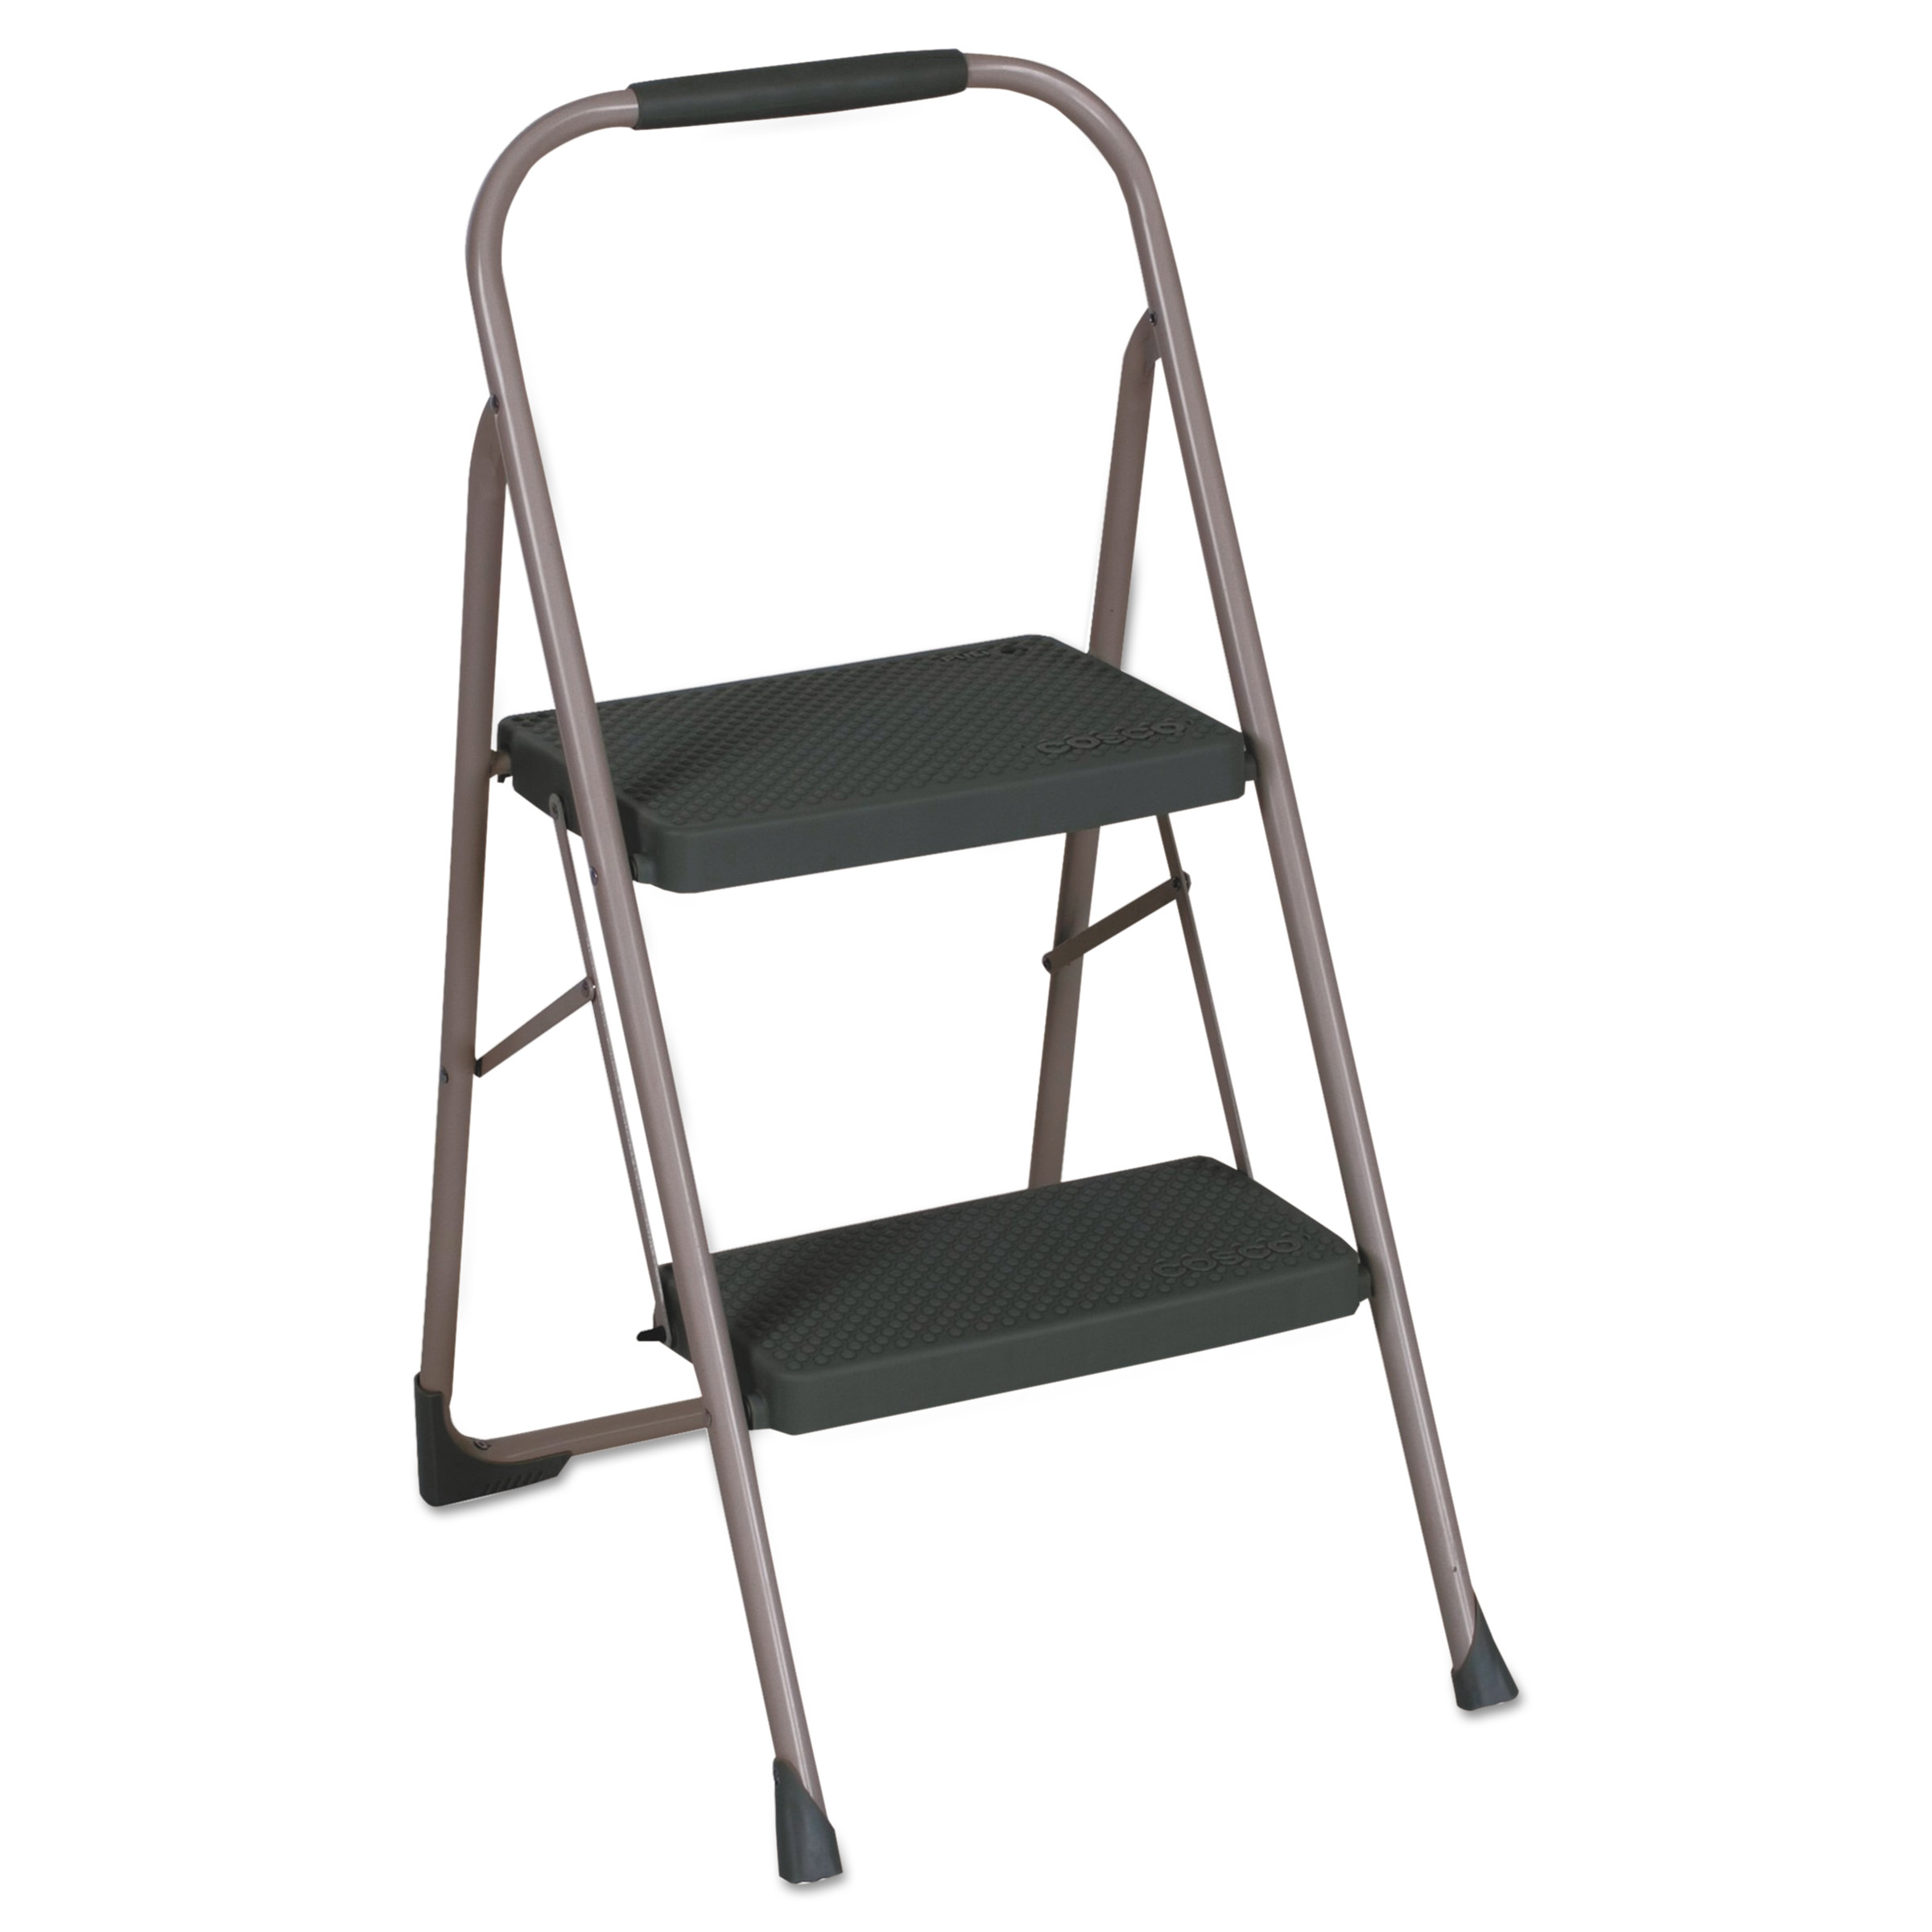 "Cosco 2-Step Big Step Folding Stool, 200lb, 22"" Spread, Black/Gray"